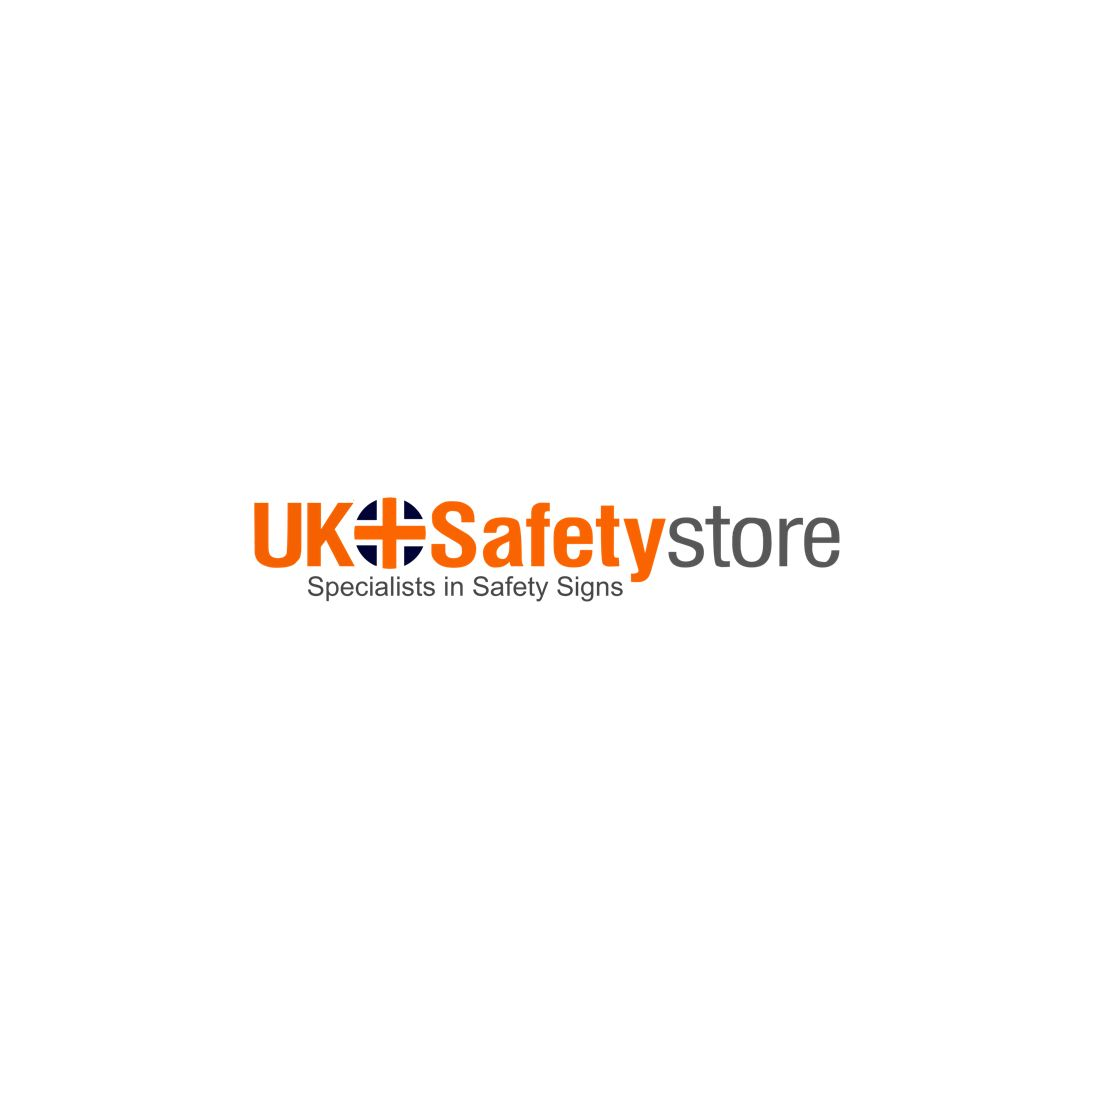 PLEASE KEEP A SAFE DISTANCE OF 2 METRES Warning Floor Stickers Black /& Yellow Social Distancing Floor Tape Sign Safety Tape 33m Hazard Tape